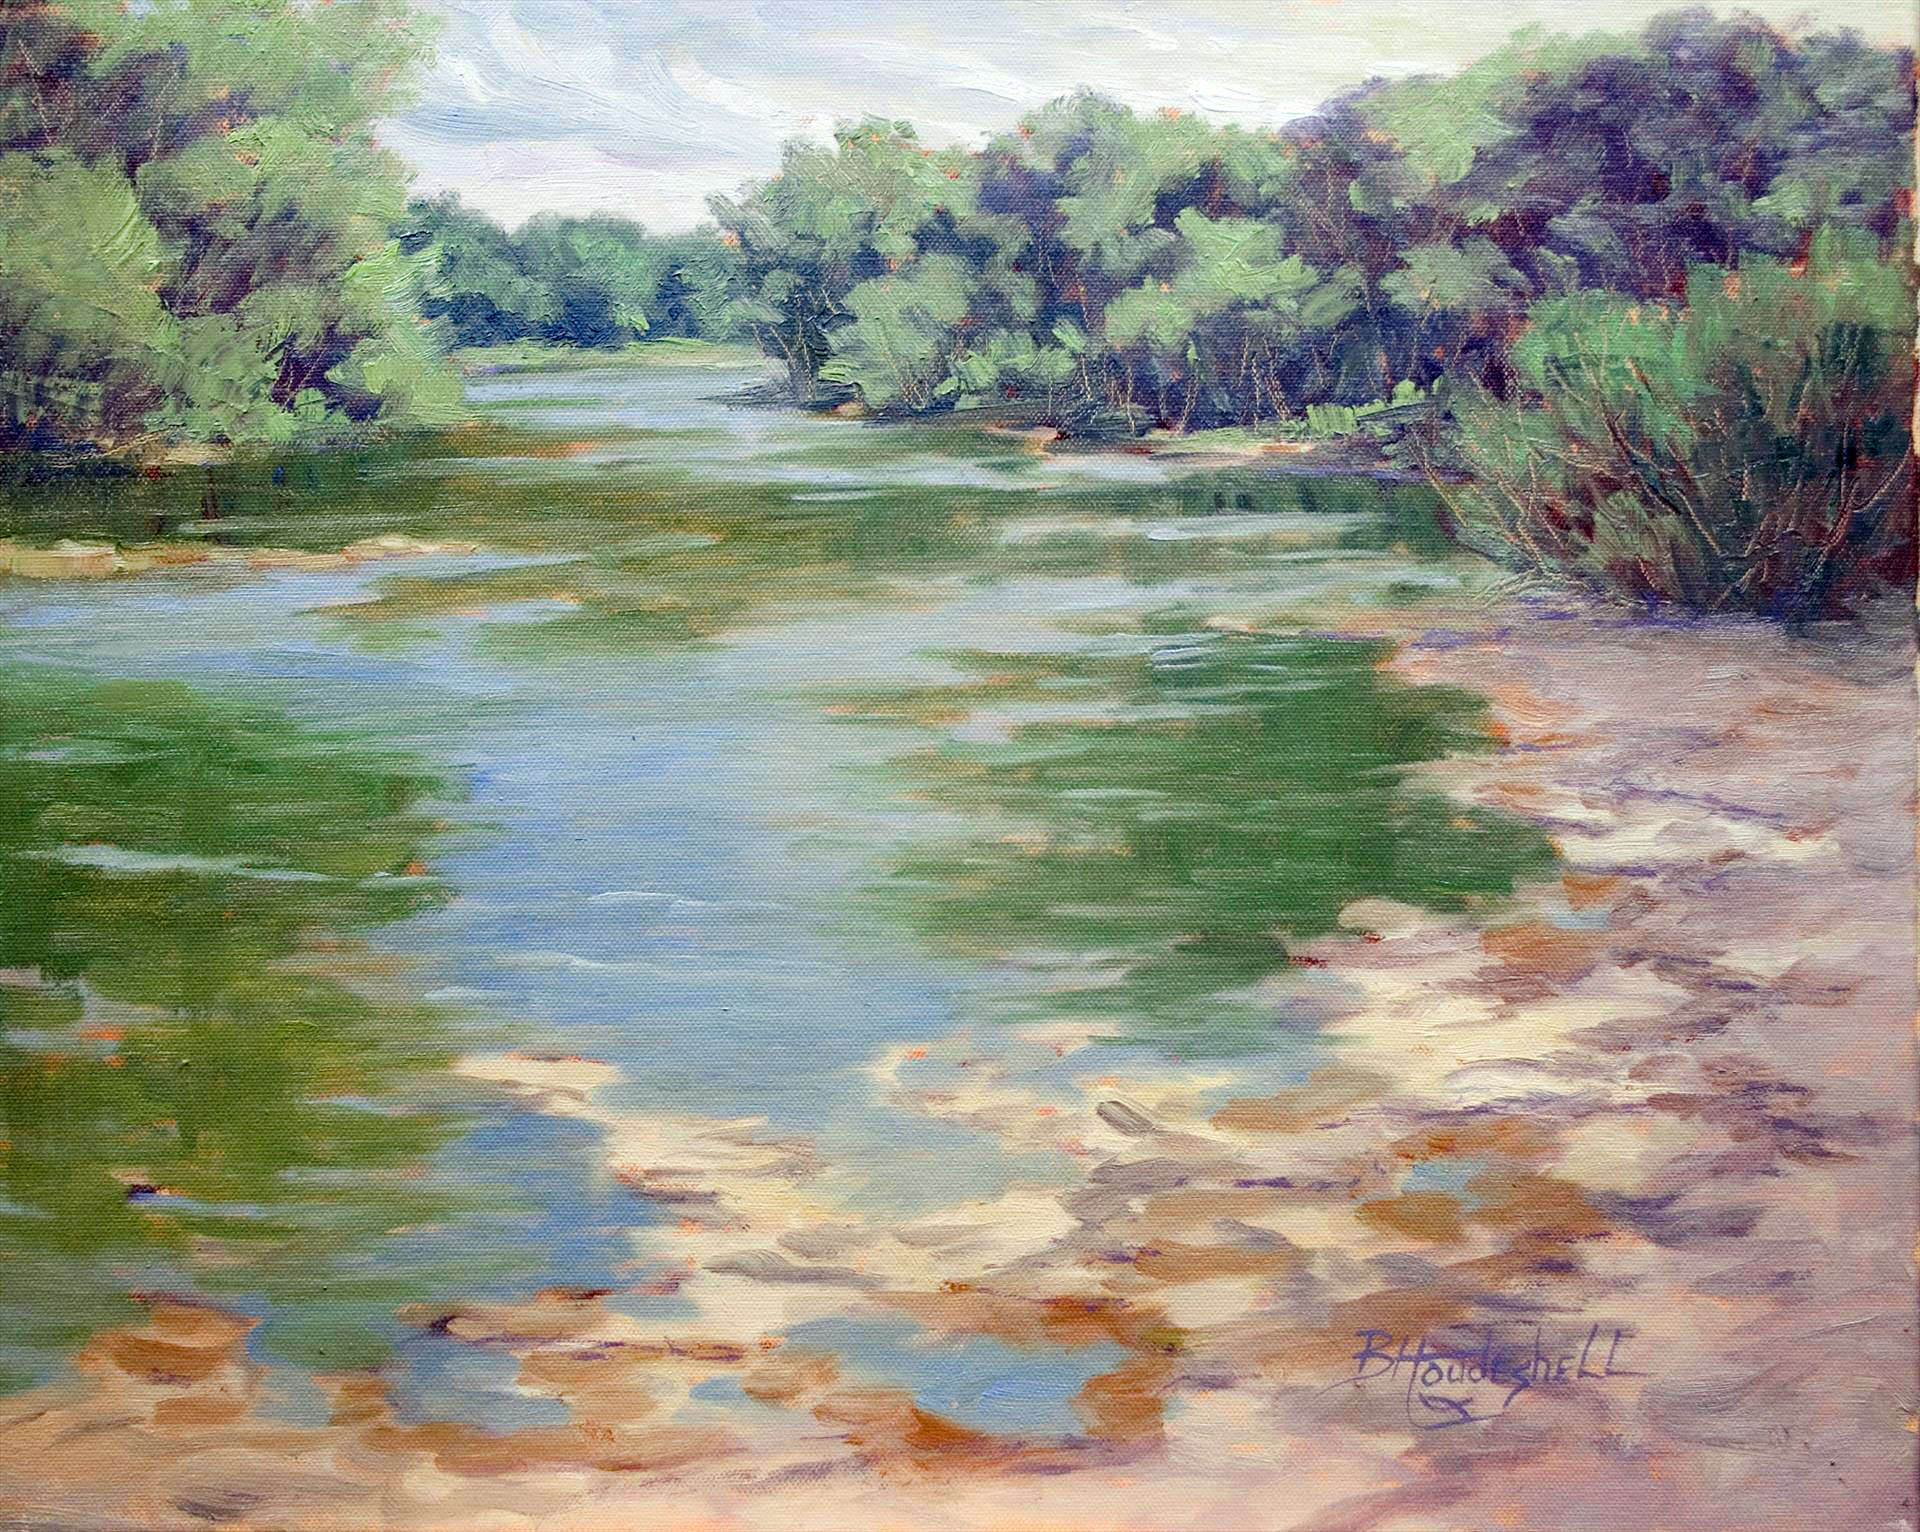 Barbara Houdeshell | RIVER VOICES | oil